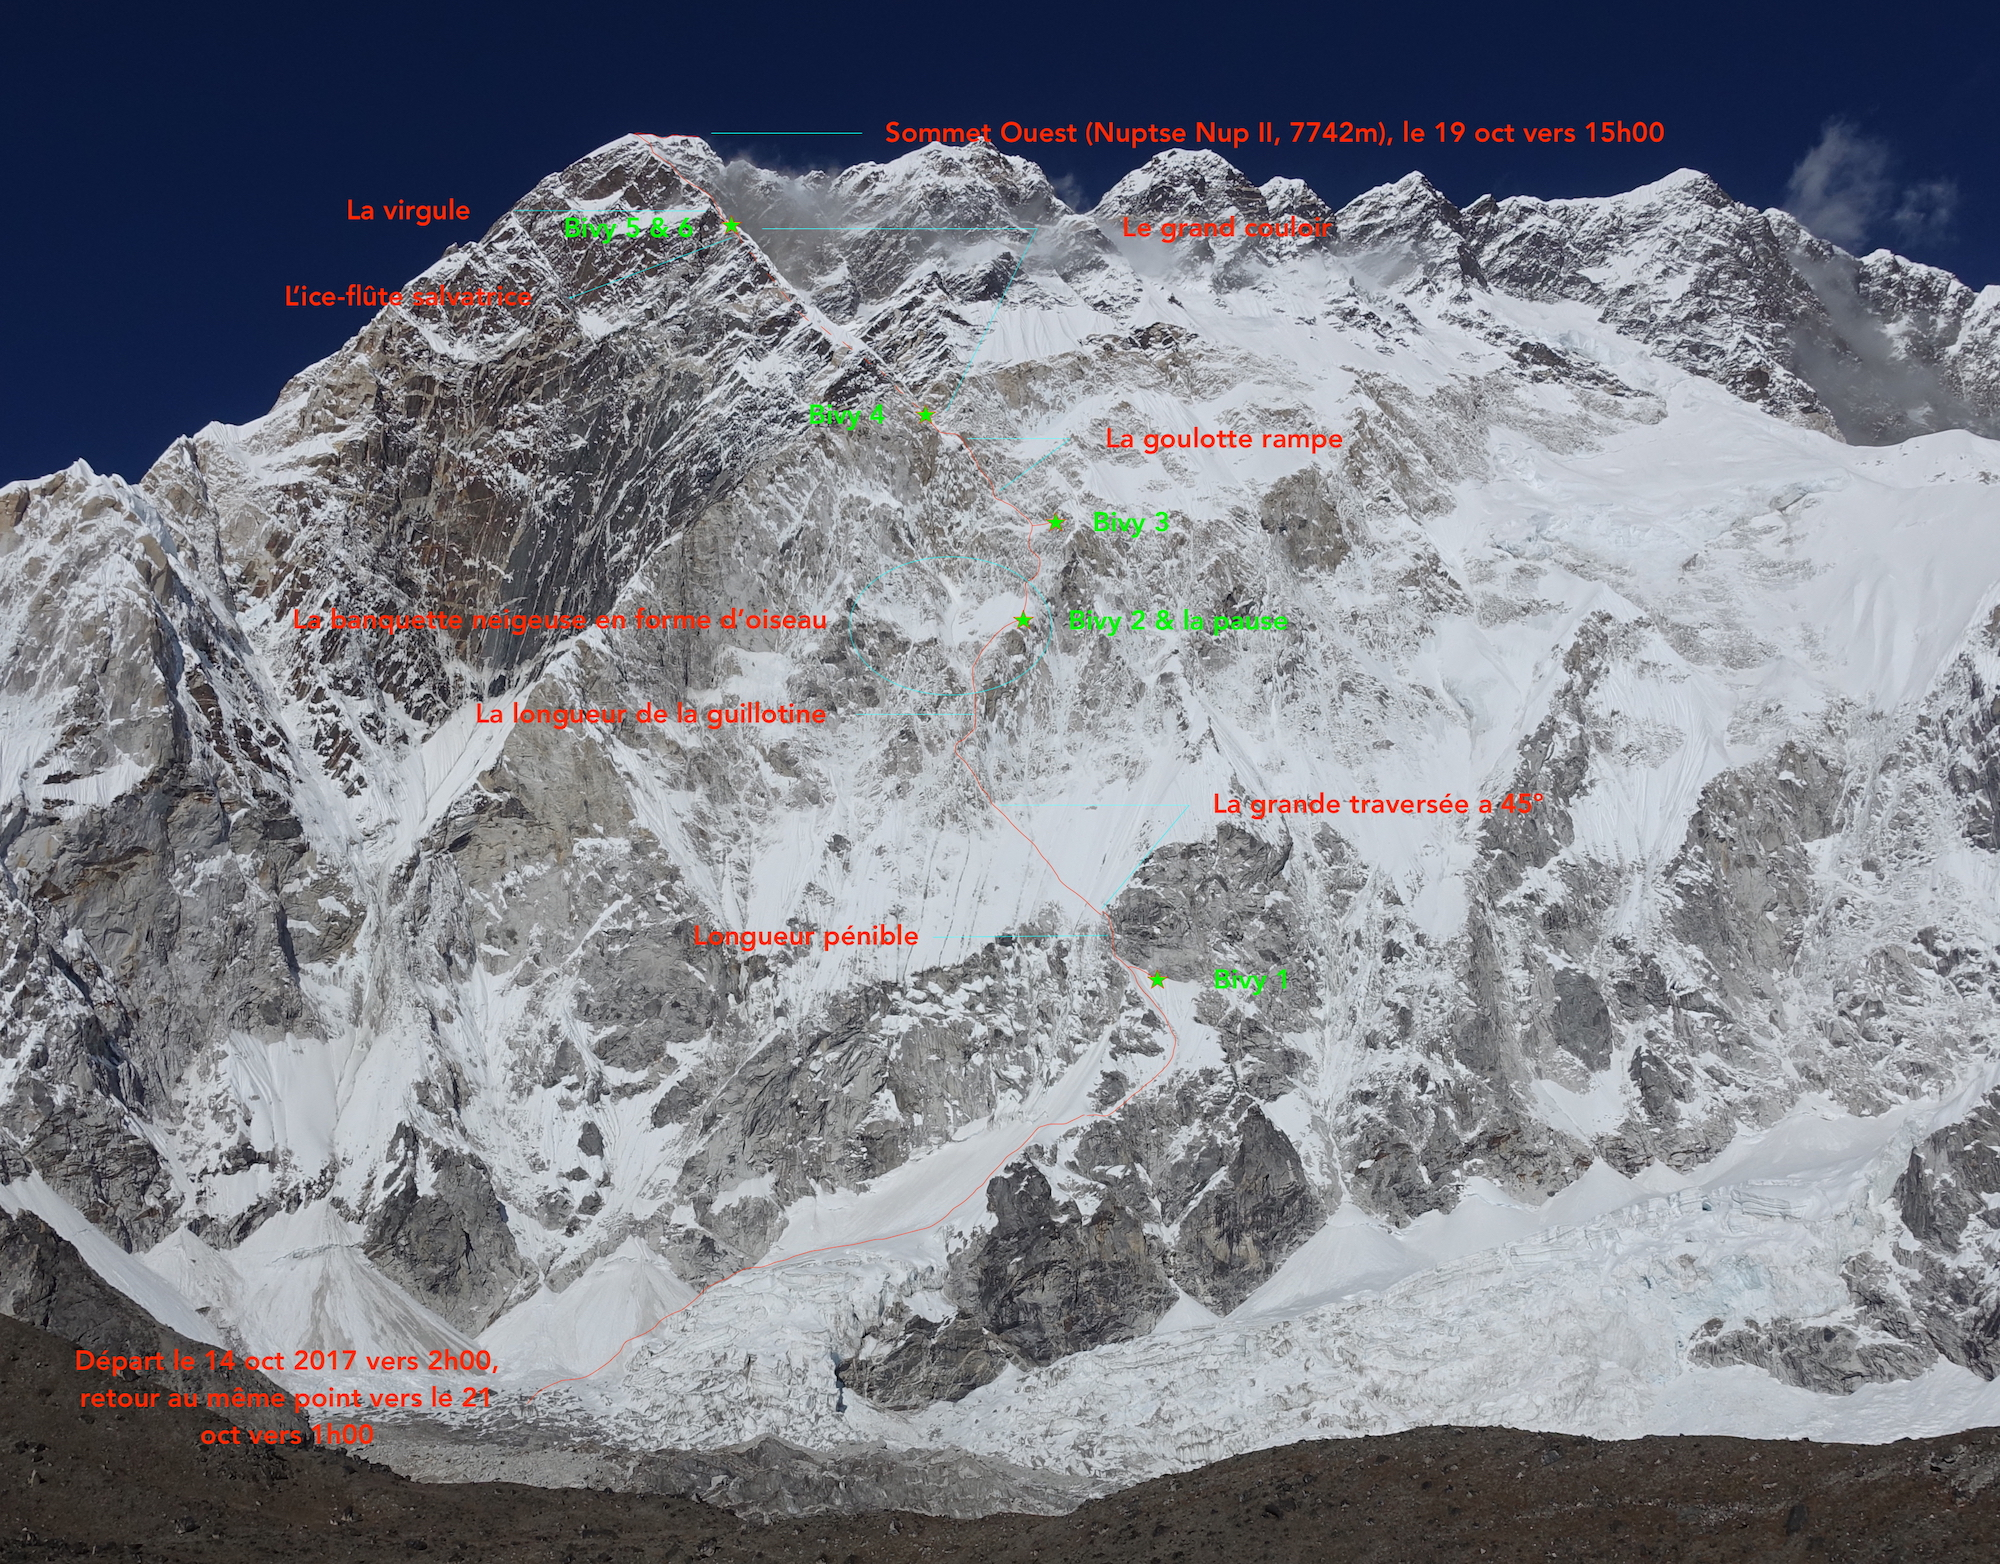 c30f1d466d The south face of Nuptse with the new route marked by the thin red line.